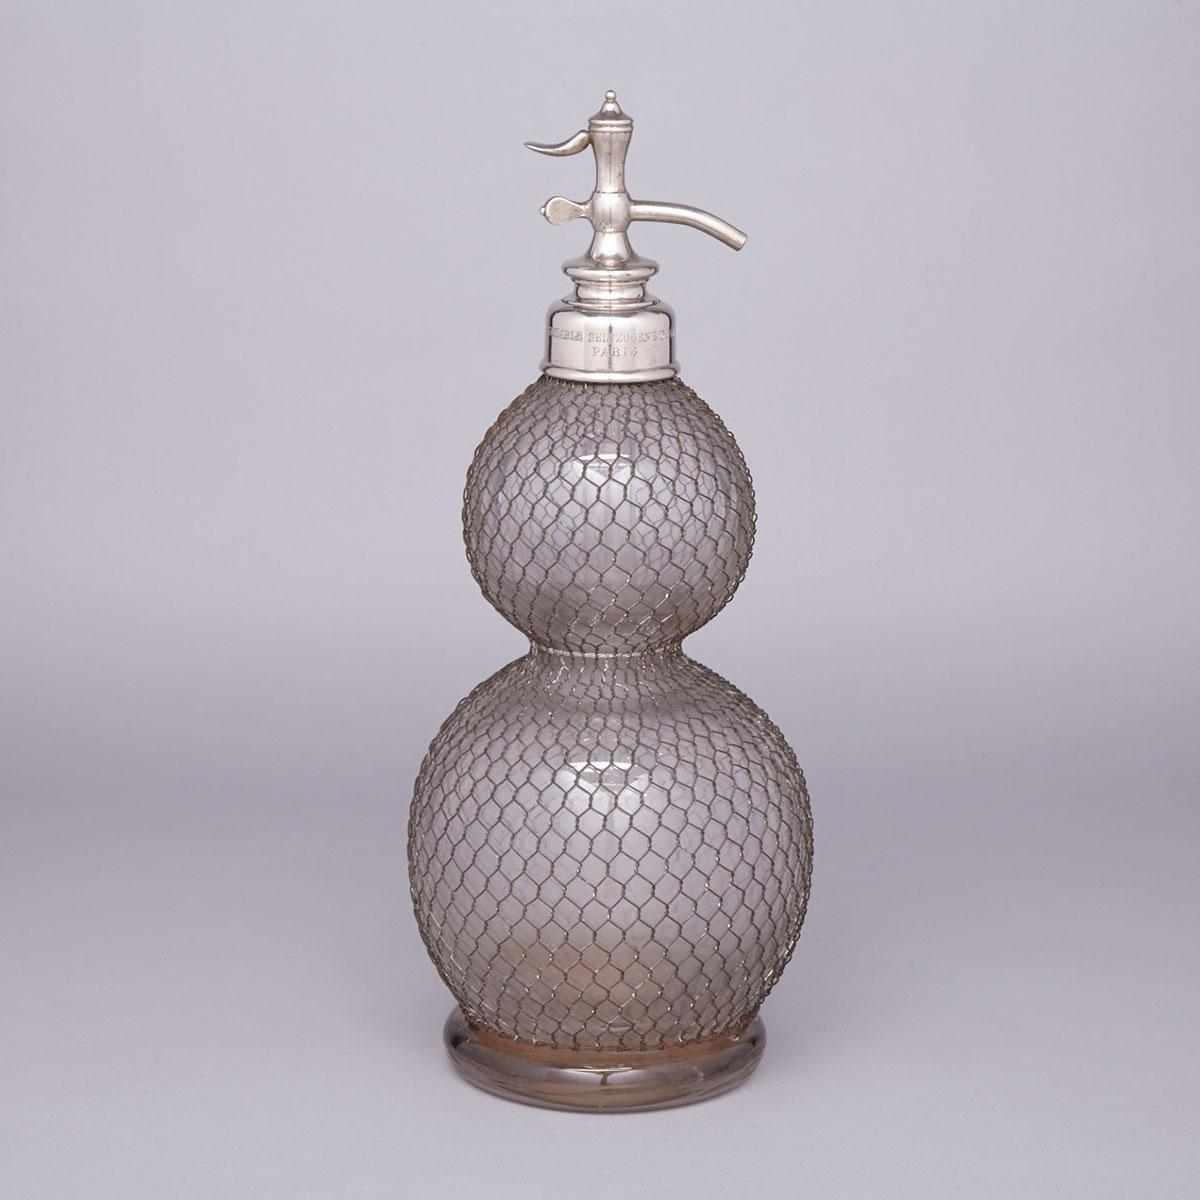 'VÉRITABLE SELTZOGENE' DOUBLE GOURD SELZER BOTTLE, PARIS, C.1900